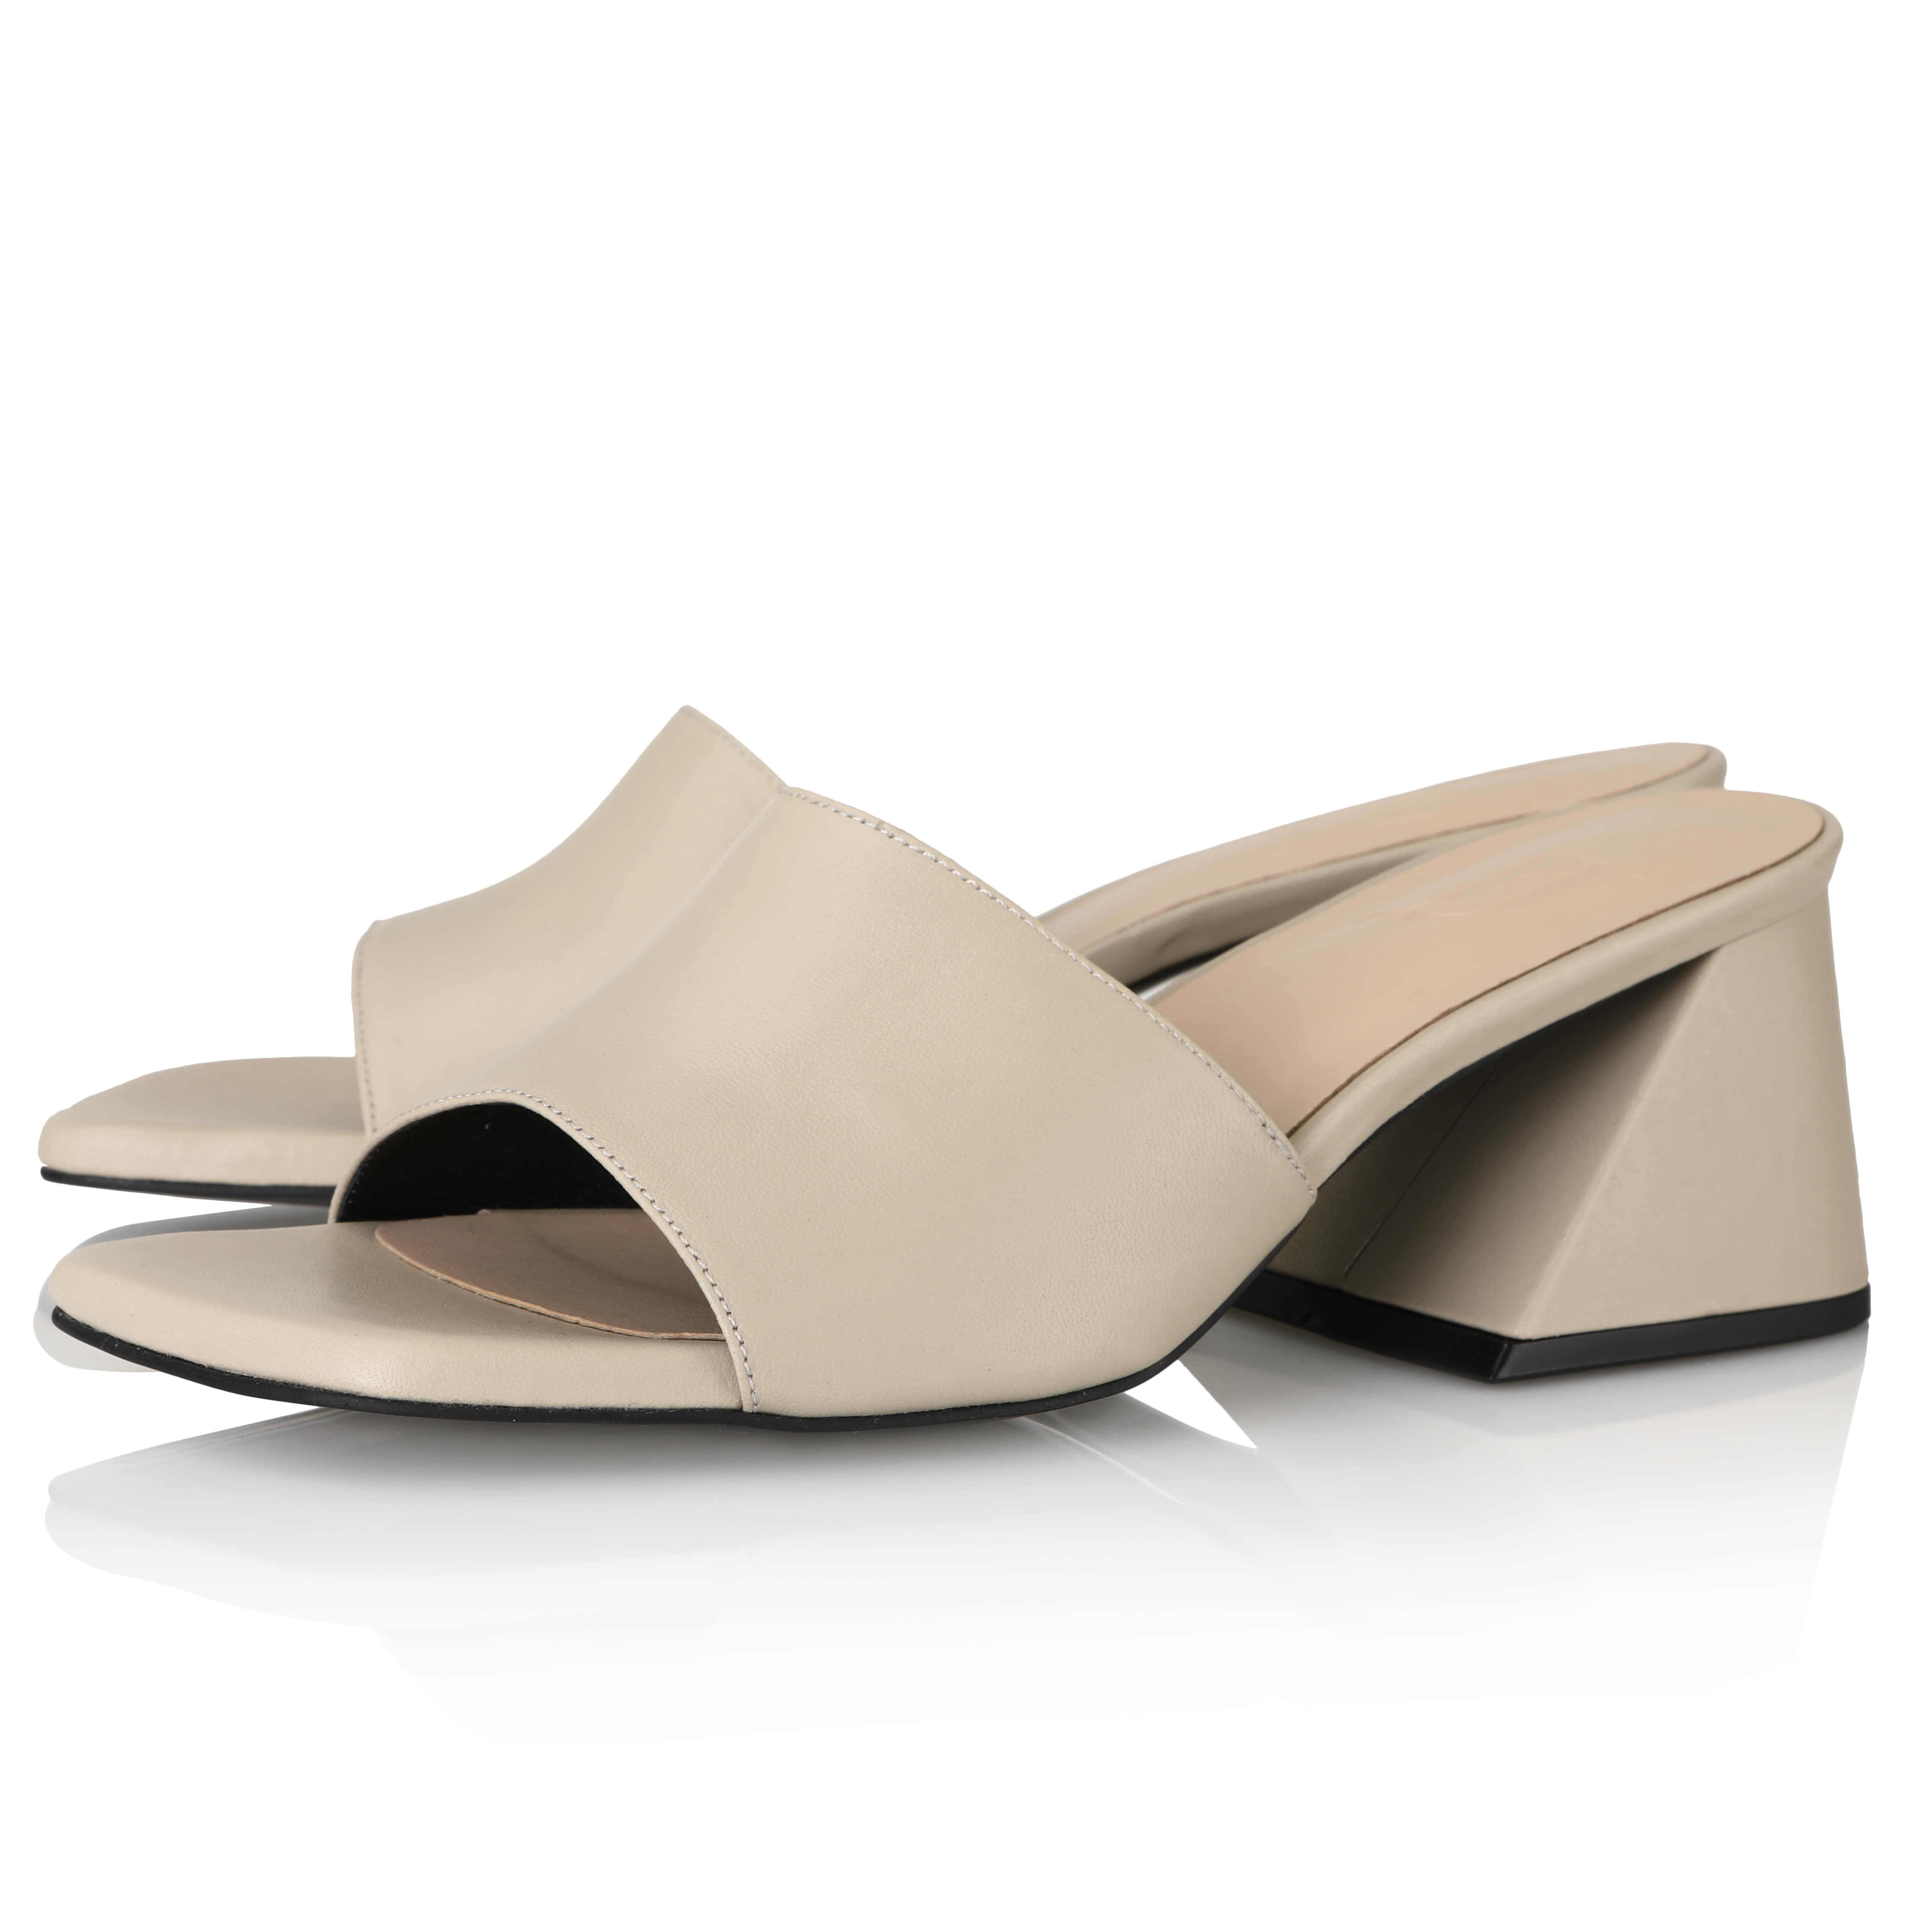 Y.01 Jane Candy Y Mules / YY20S-S47 / Sand Beige